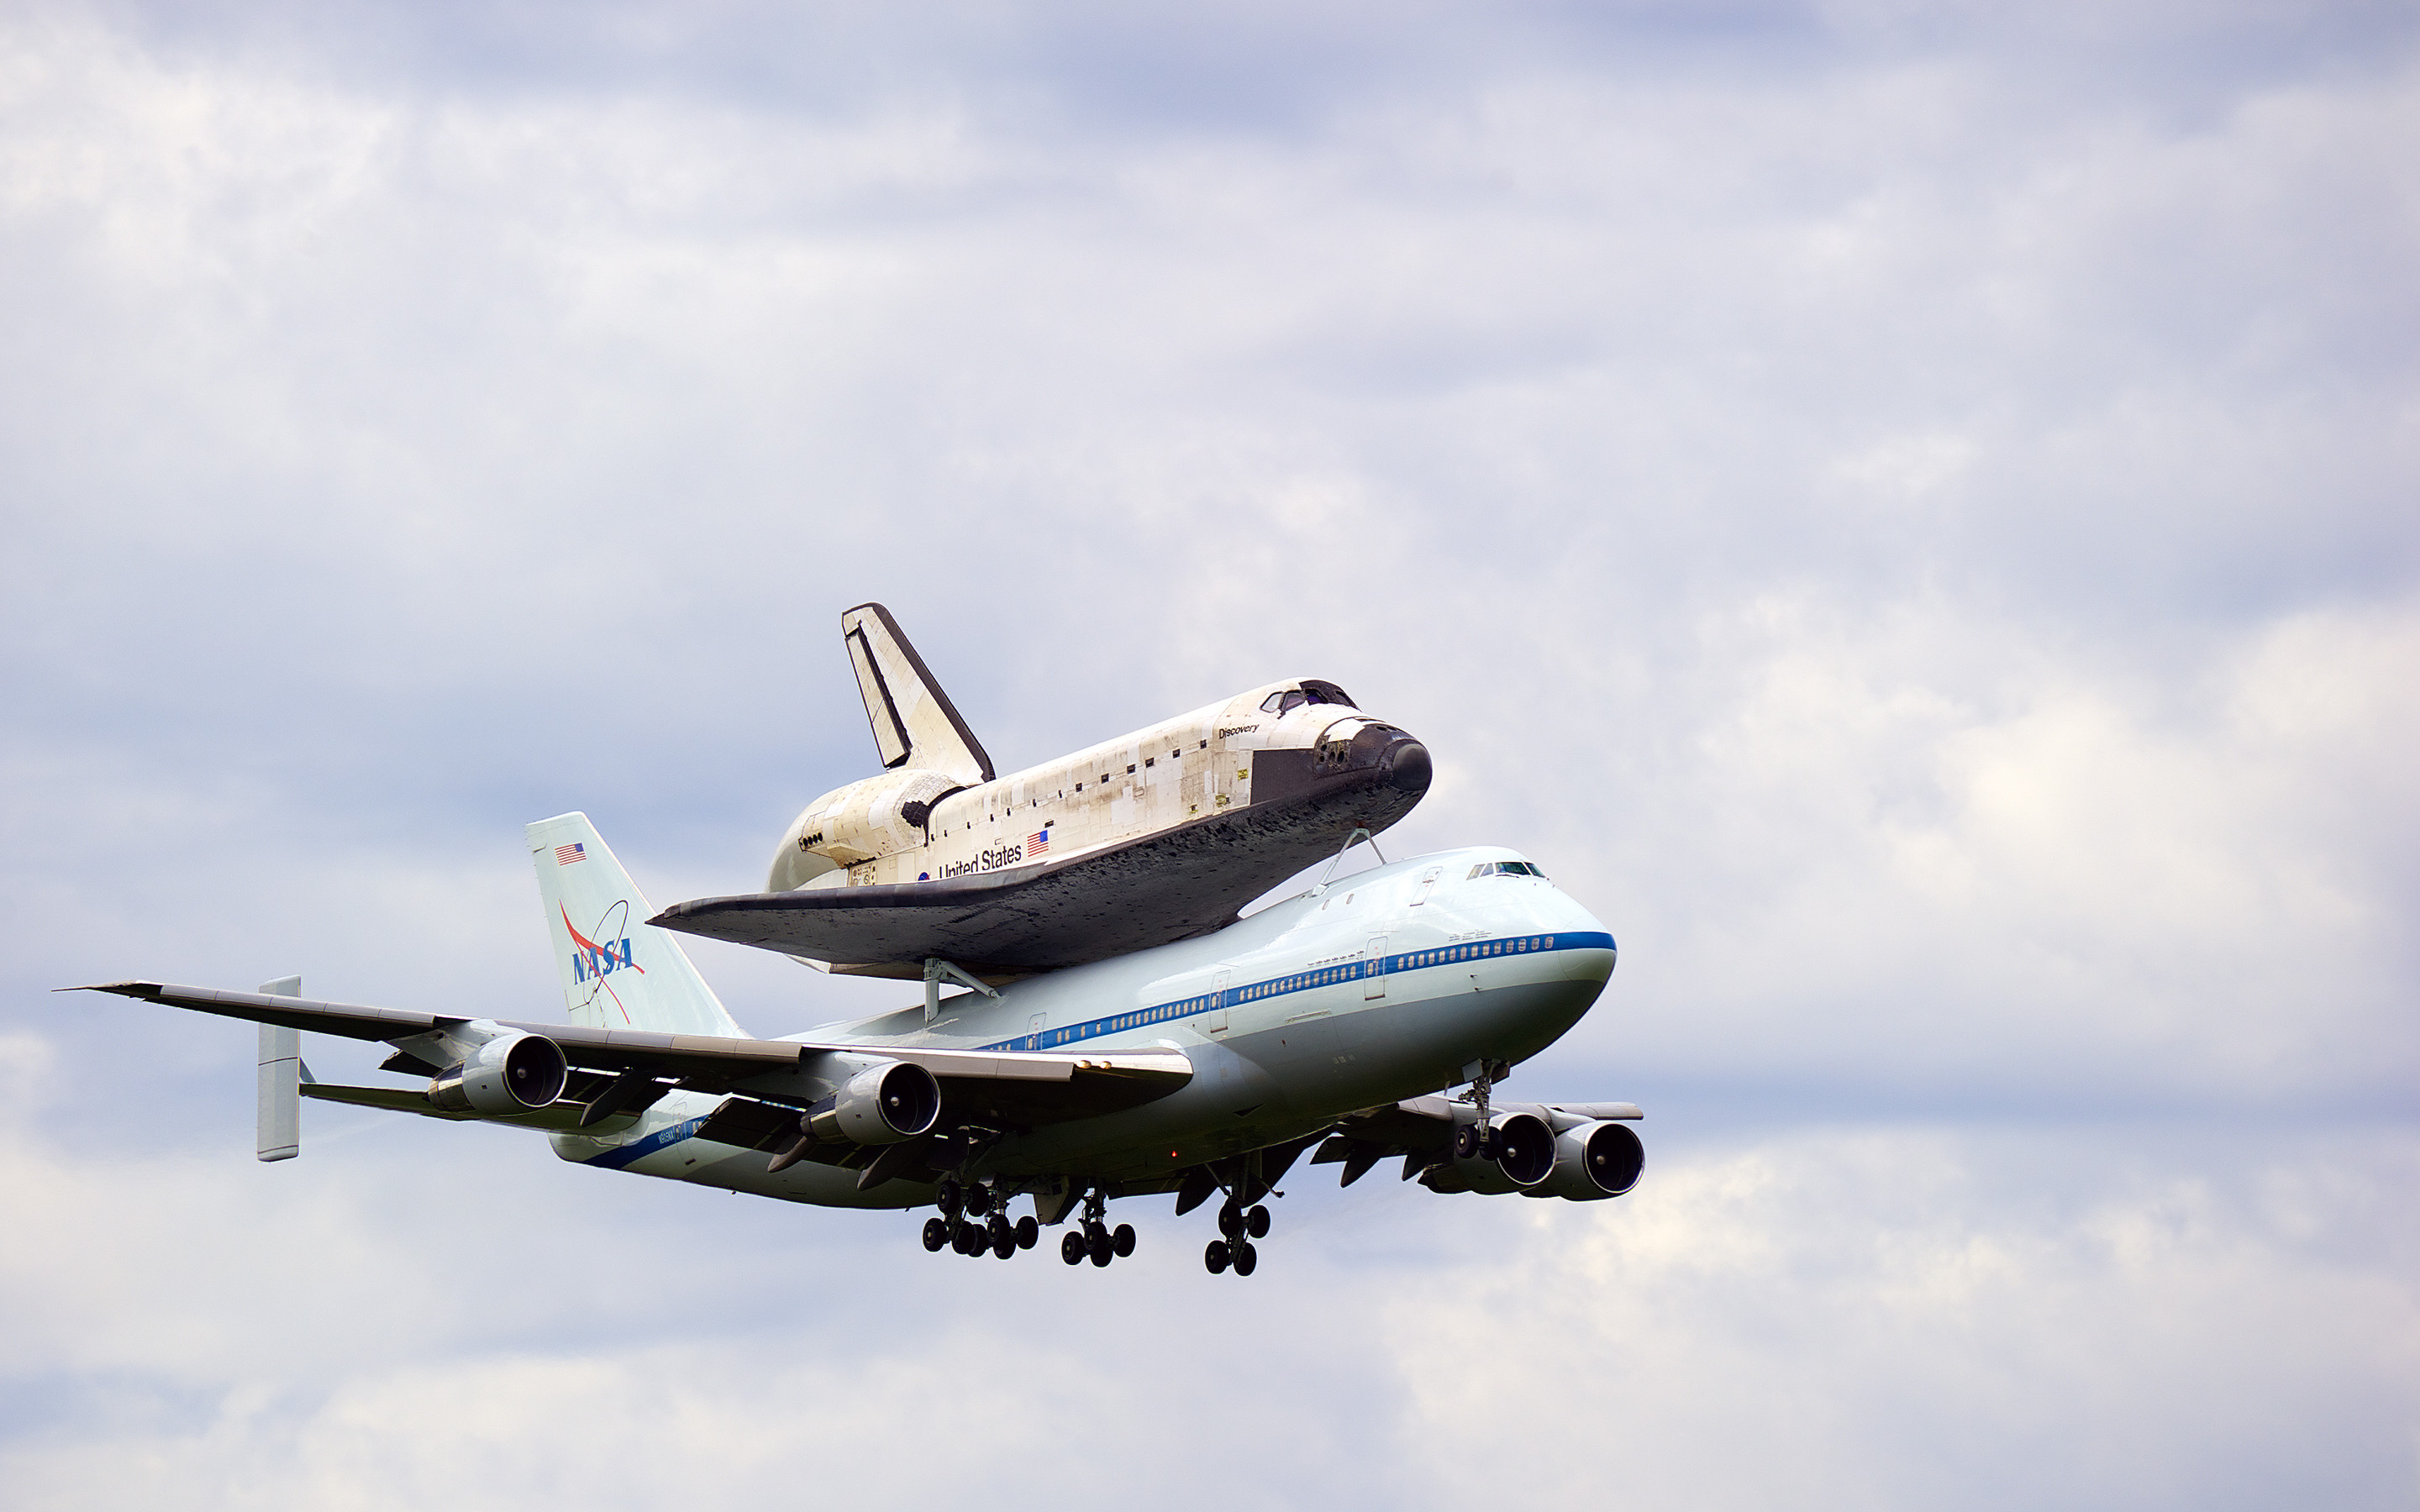 2880x1800 Space Shuttle Discovery Widescreen Wallpaper